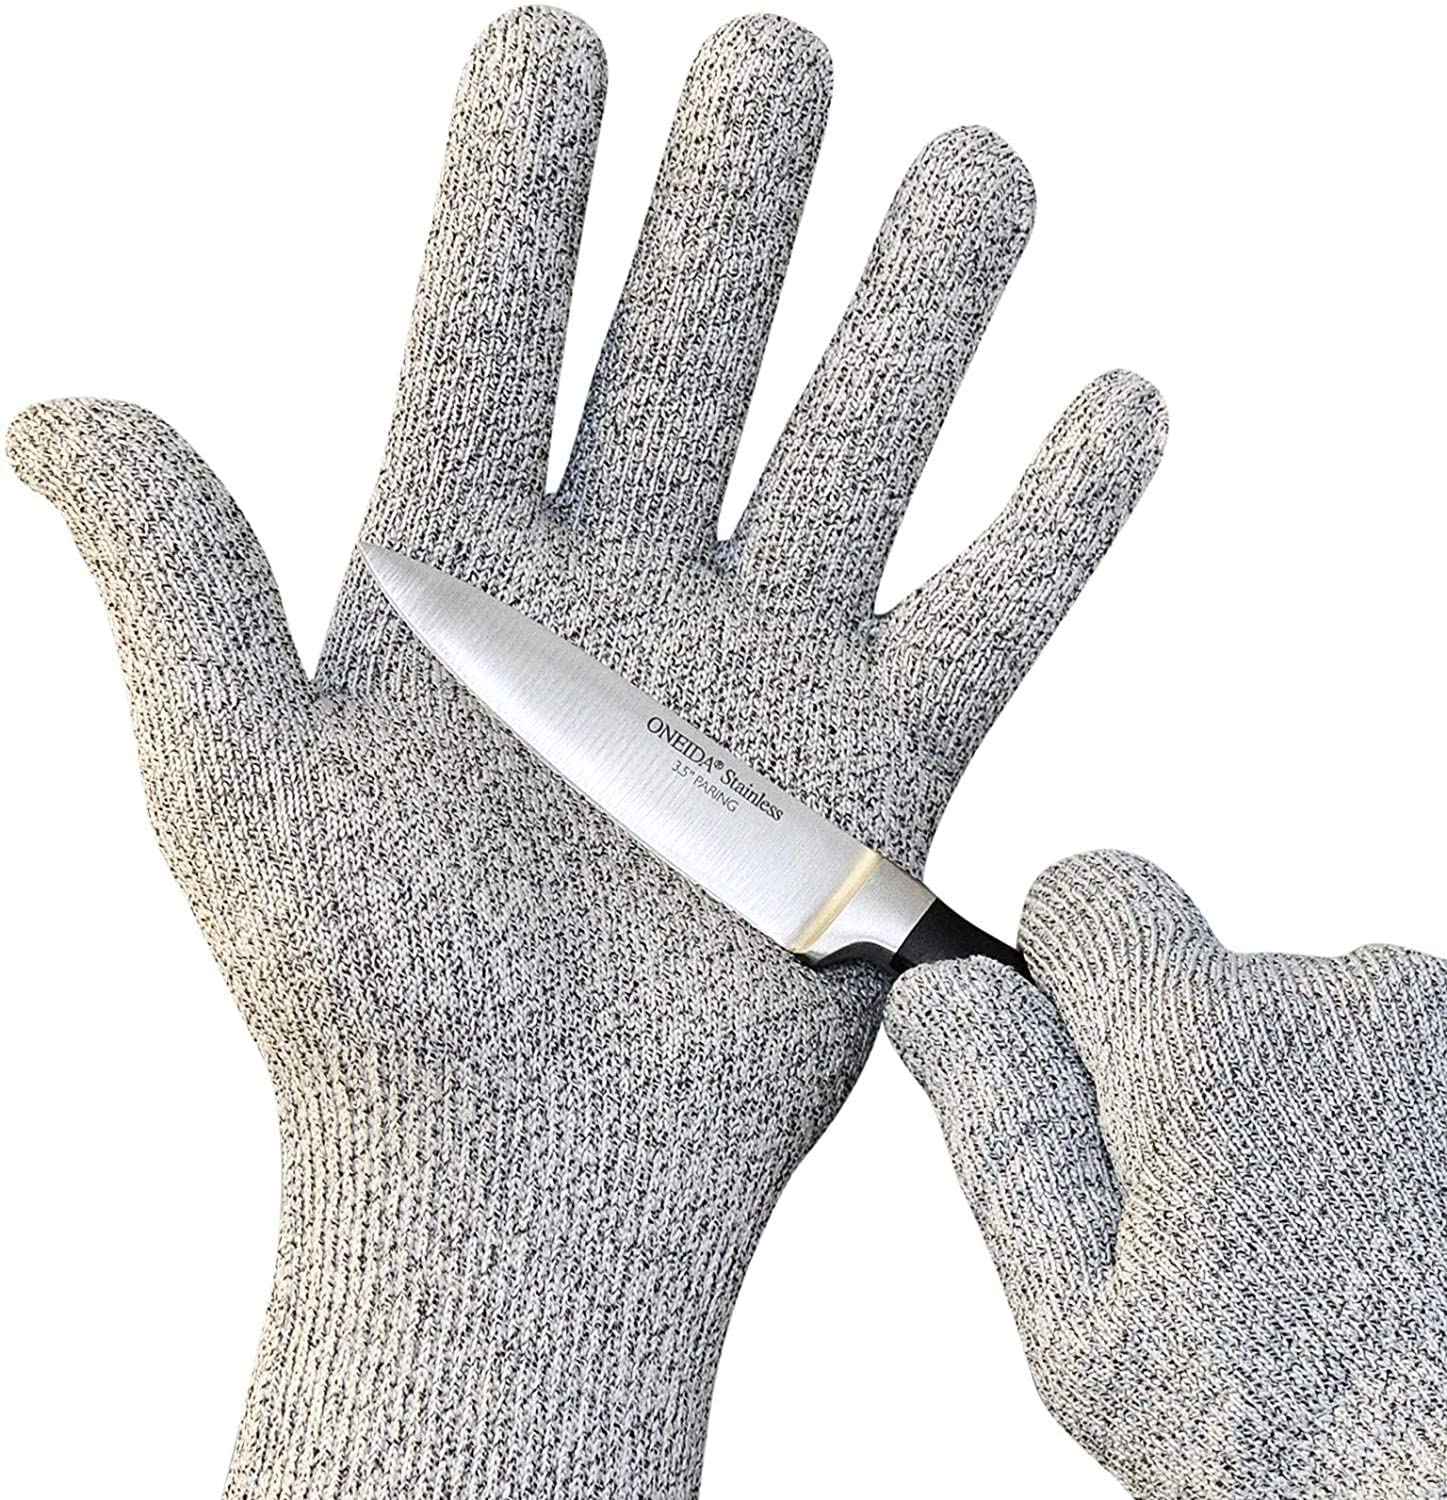 NYOrtho Cut Resistant Gloves - Food Grade, High Performance Level 5 Protection Extra Large (1 Pair of 2 Gloves)